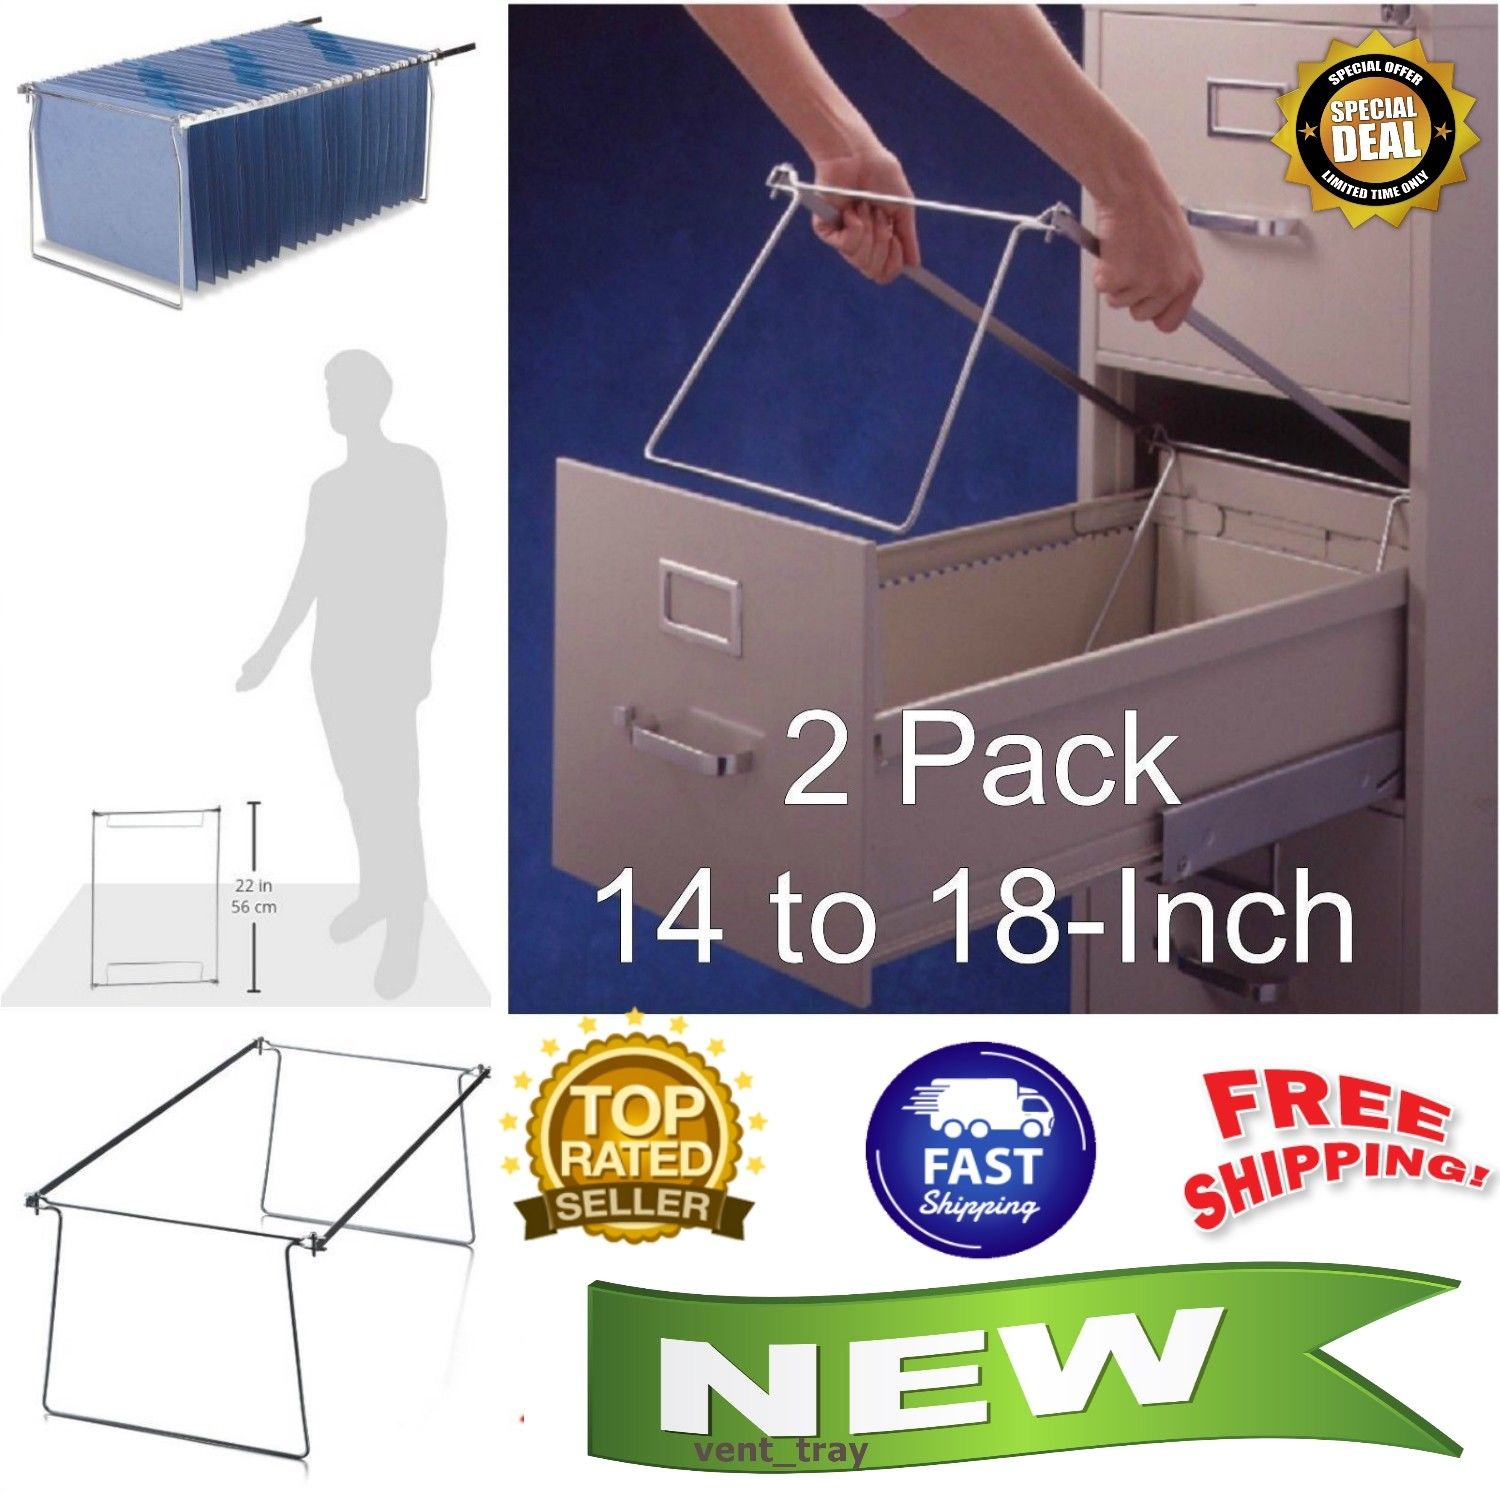 Details About 2 Pack Office File Folder Frame Hanging Letter Size Holder Drawer Cabinet Rack